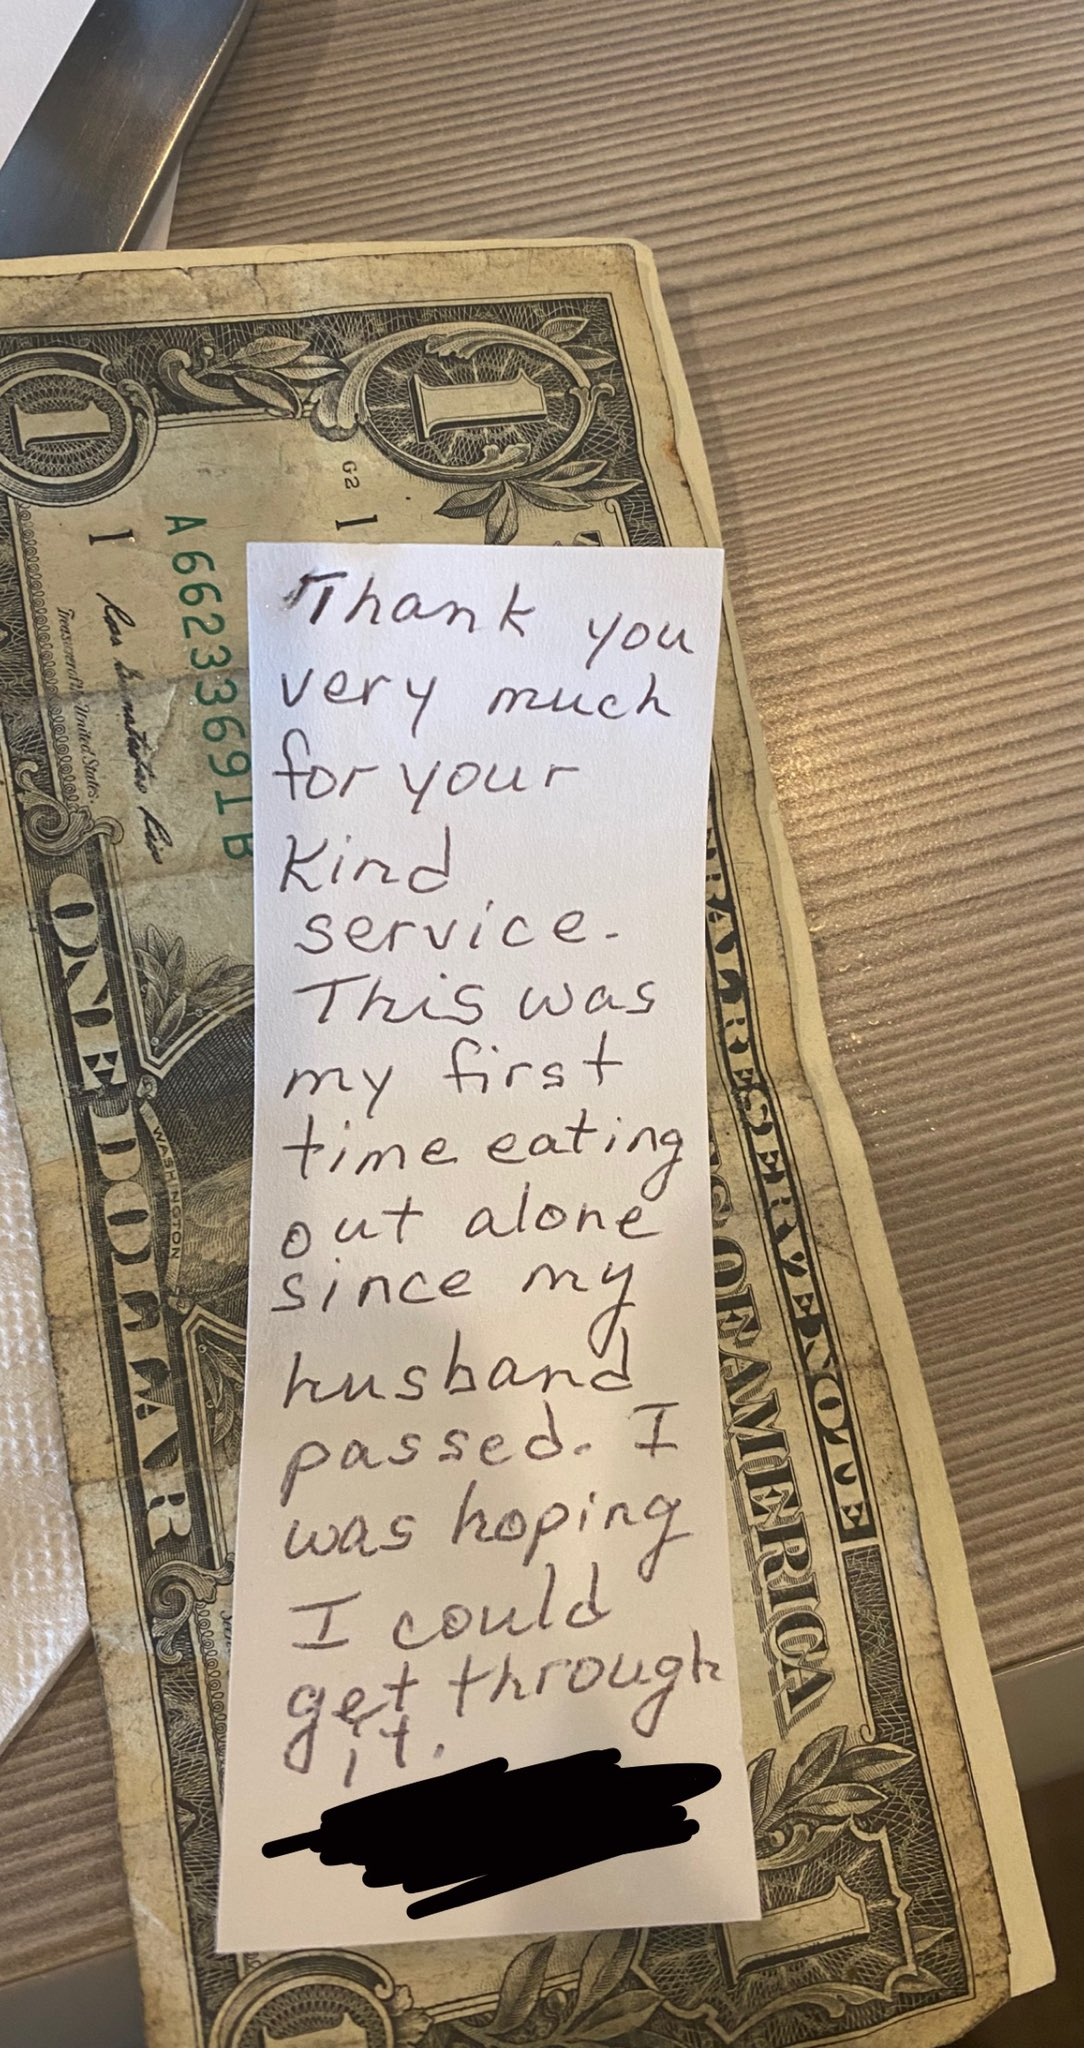 A viral note that was left behind by an elderly woman as a way to thank her kind waitress | Photo: Twitter/alienpopstarr